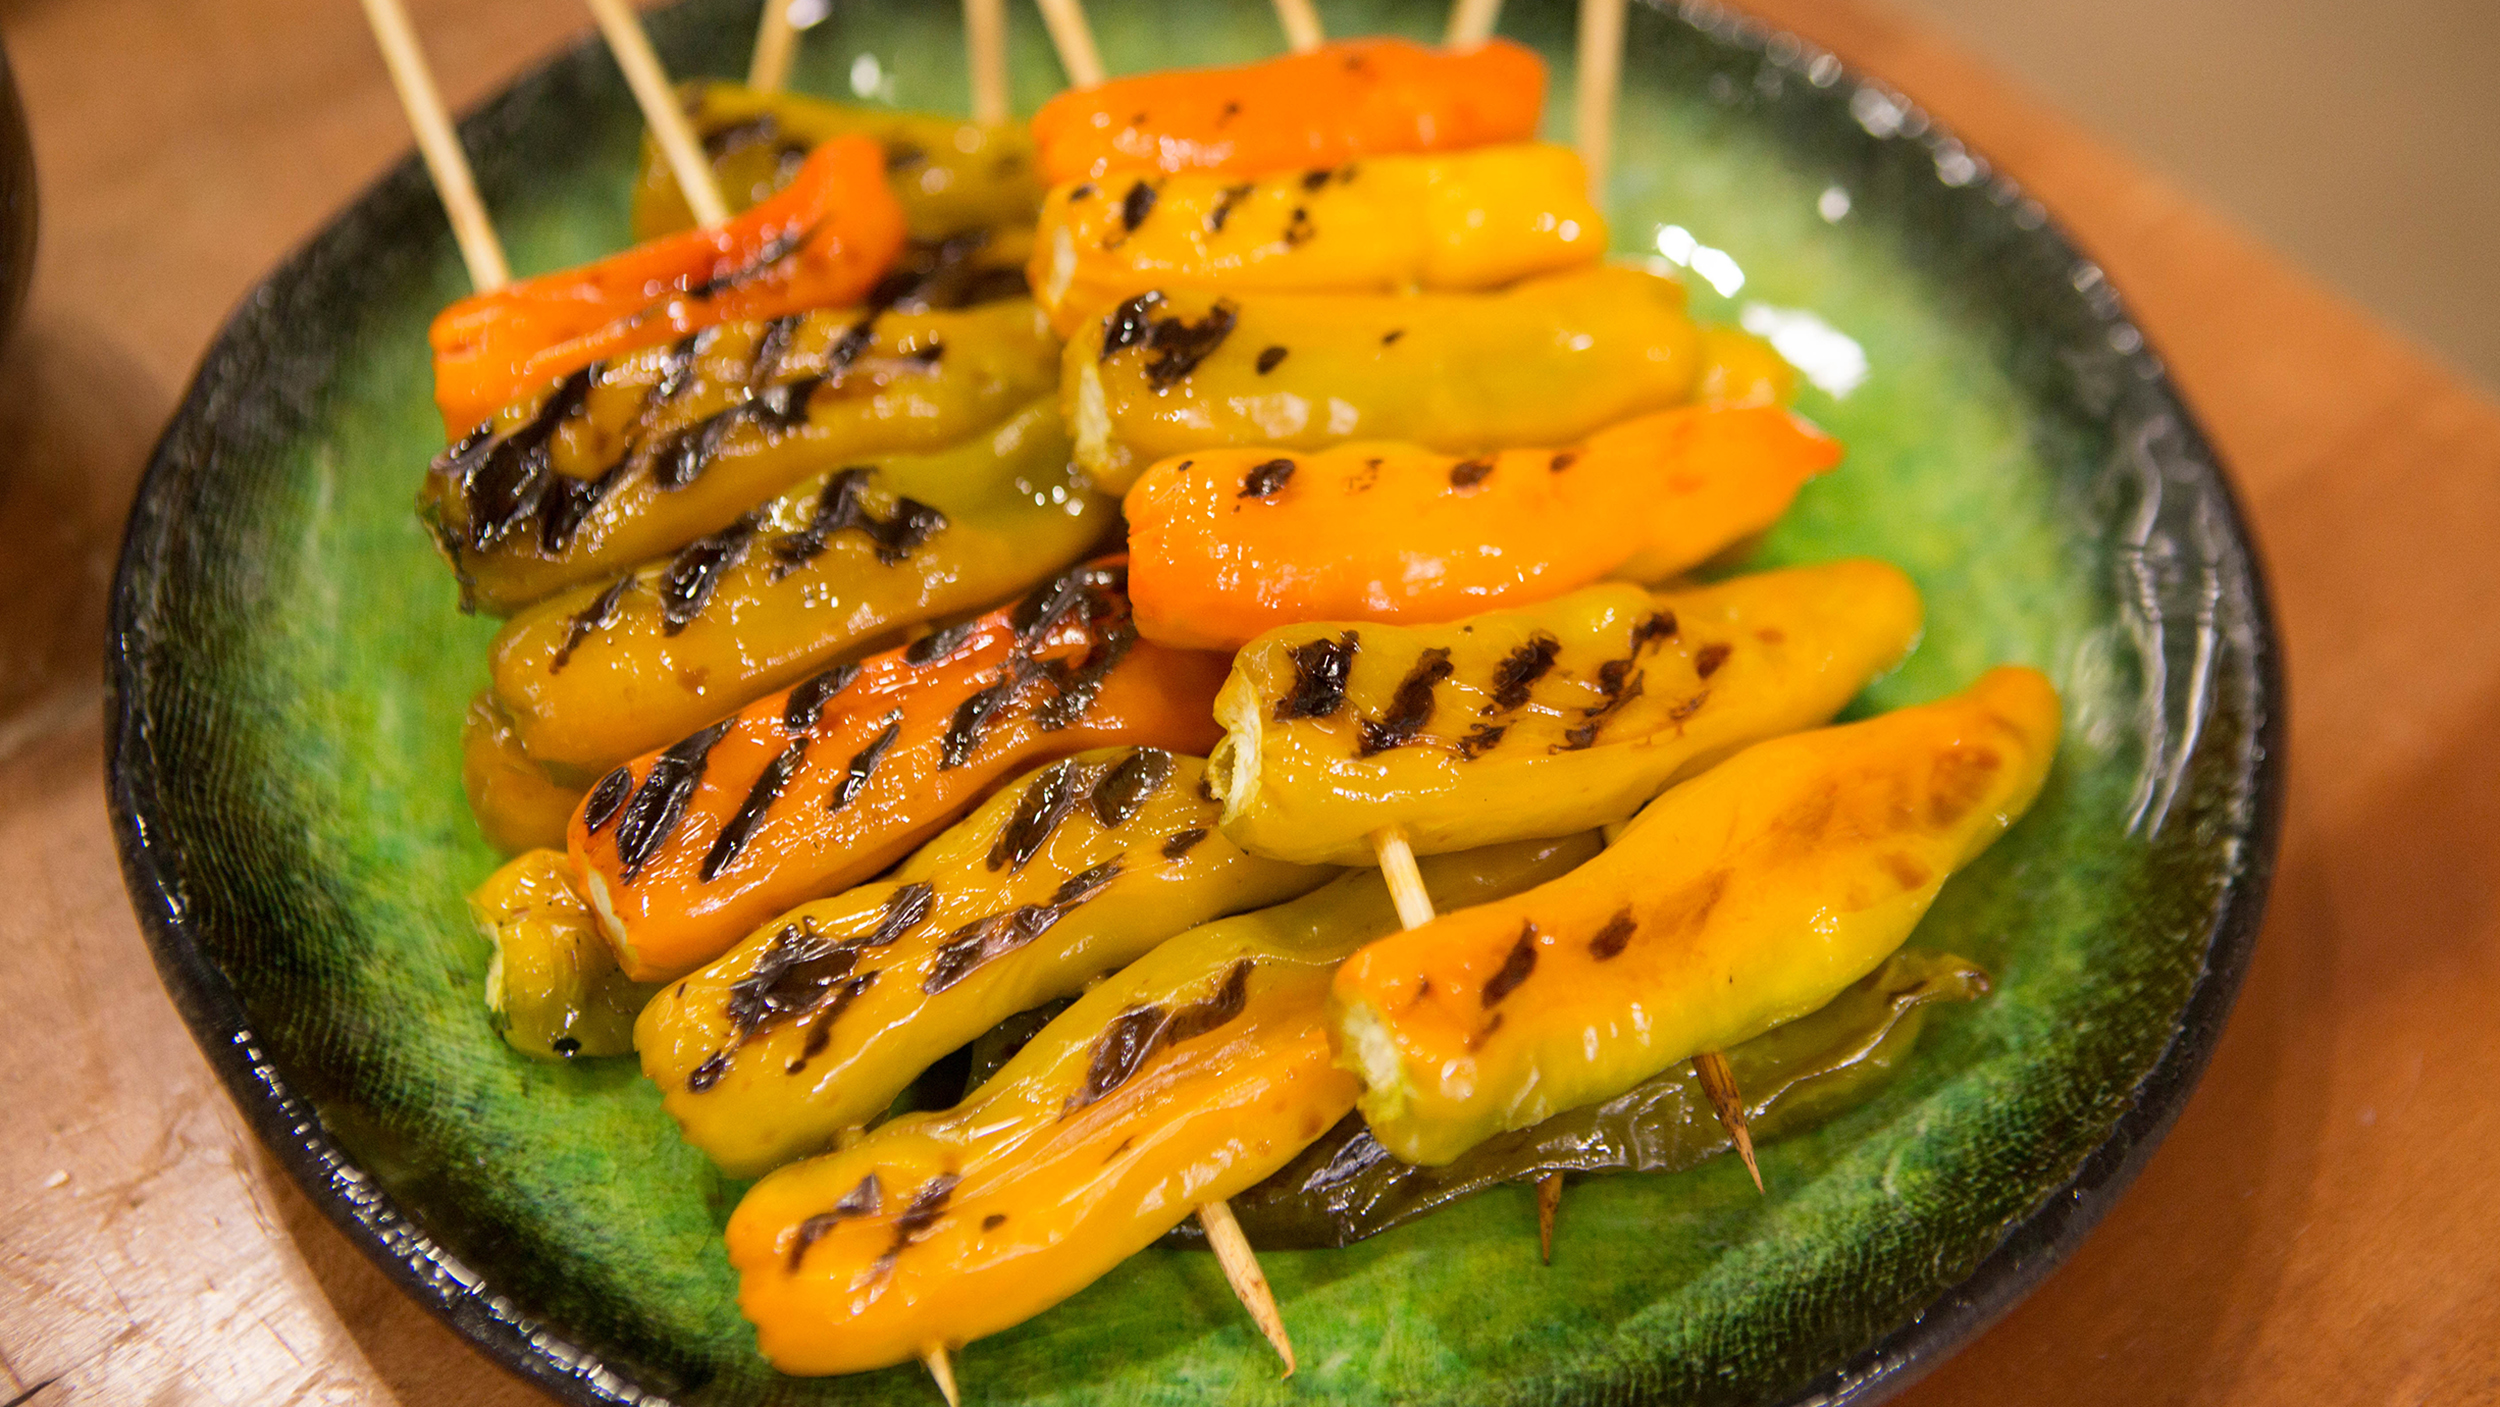 Grilled Shishito Peppers with Ponzu Sauce - TODAY.com